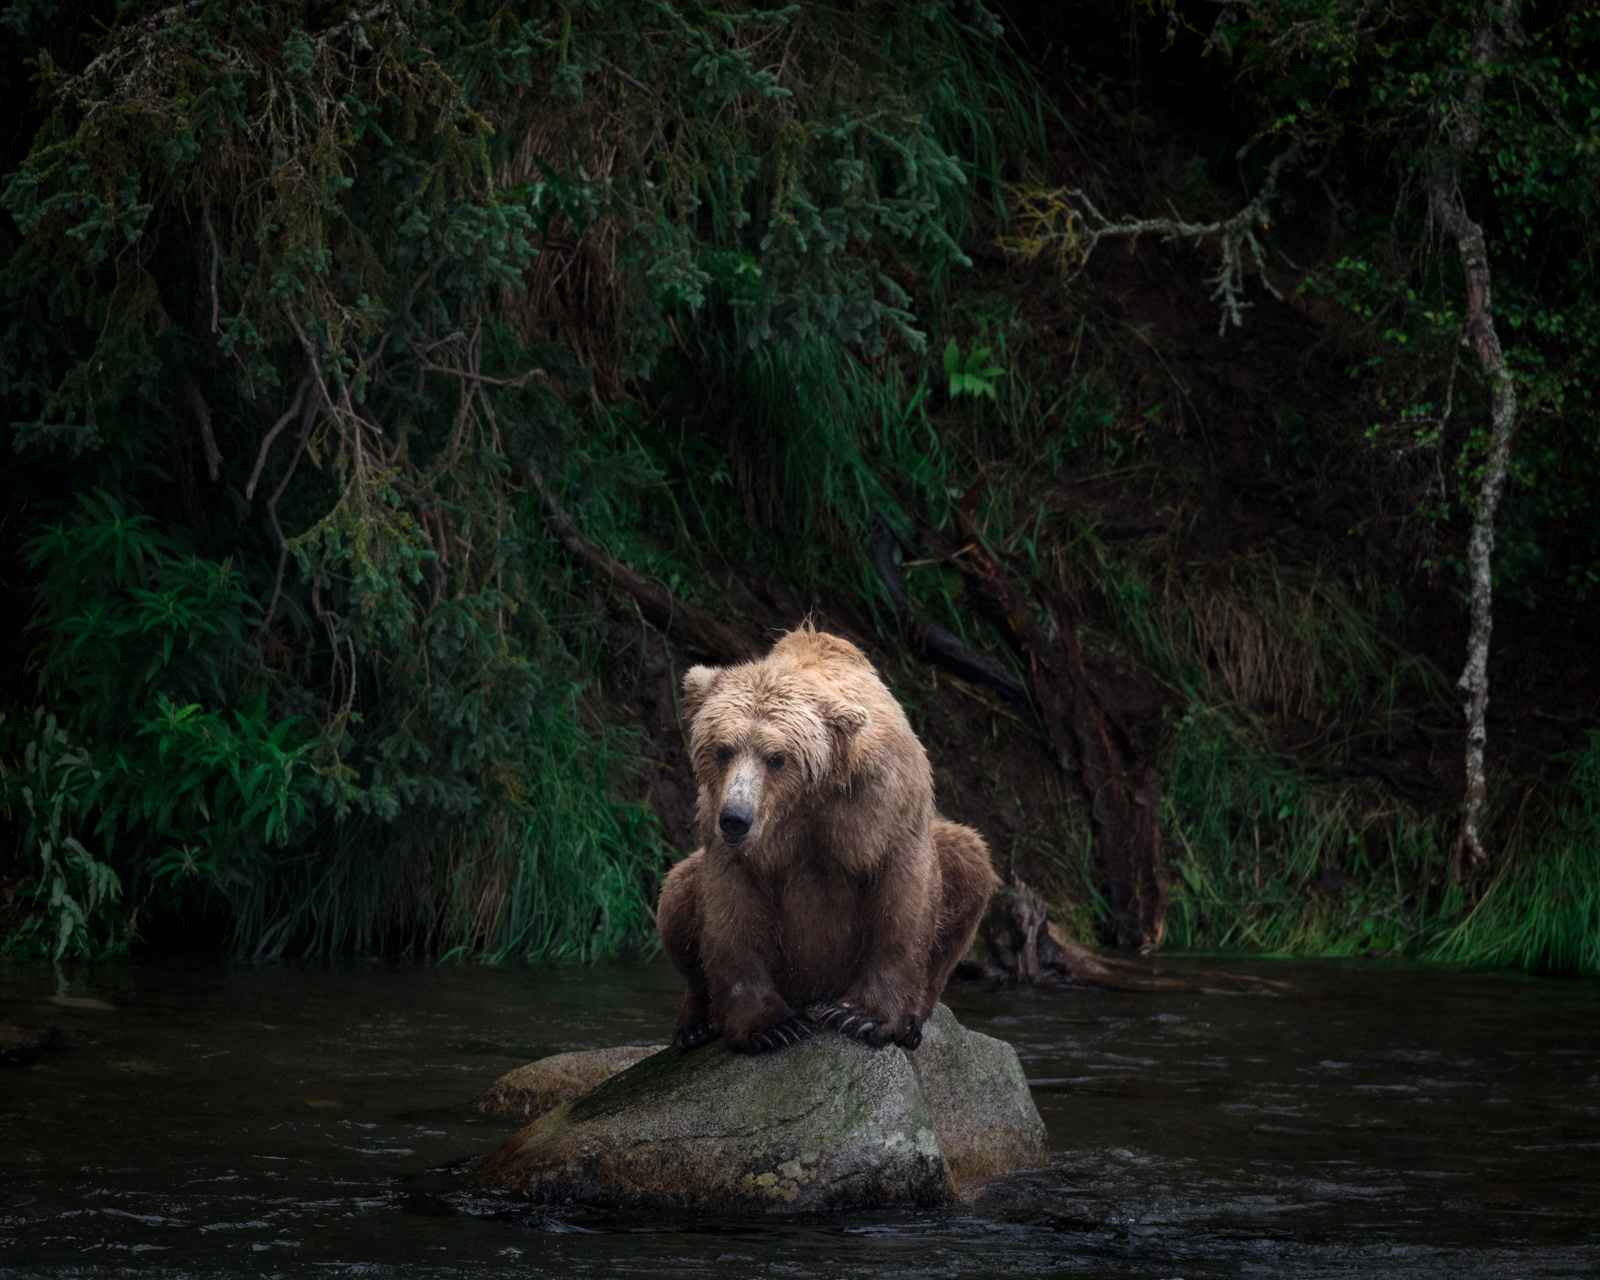 A grizzly bear waits for salmon at Brooks Falls, Alaska, during one of the densest salmon runs on record. Brooks Camp, in Alaska's Katmai National Park, is a wild bear sanctuary accessible to the public, making bear viewing possible in a safe and controlled way that respects and protects the animals (it's even wheelchair accessible). This grizzly bear population is imminently threatened by the proposed Pebble Mine project, which could destroy this remarkable salmon habitat and the bears that depend on it. At the time this photograph was taken, the wealth of salmon in the river had attracted a group of over 30 bears visible from a single spot. © Acacia Johnson